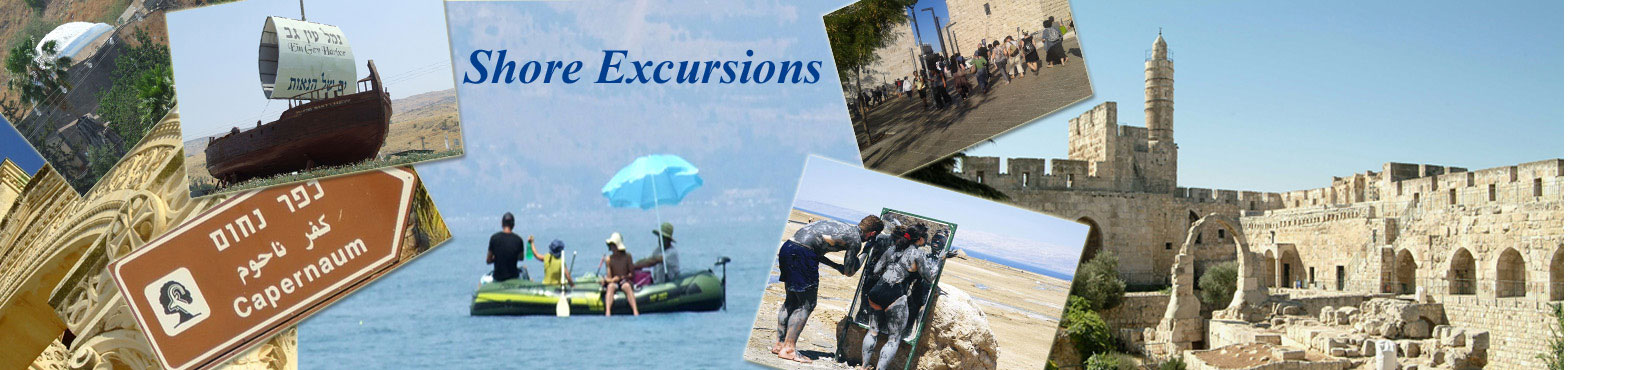 Israel Shore Excursions